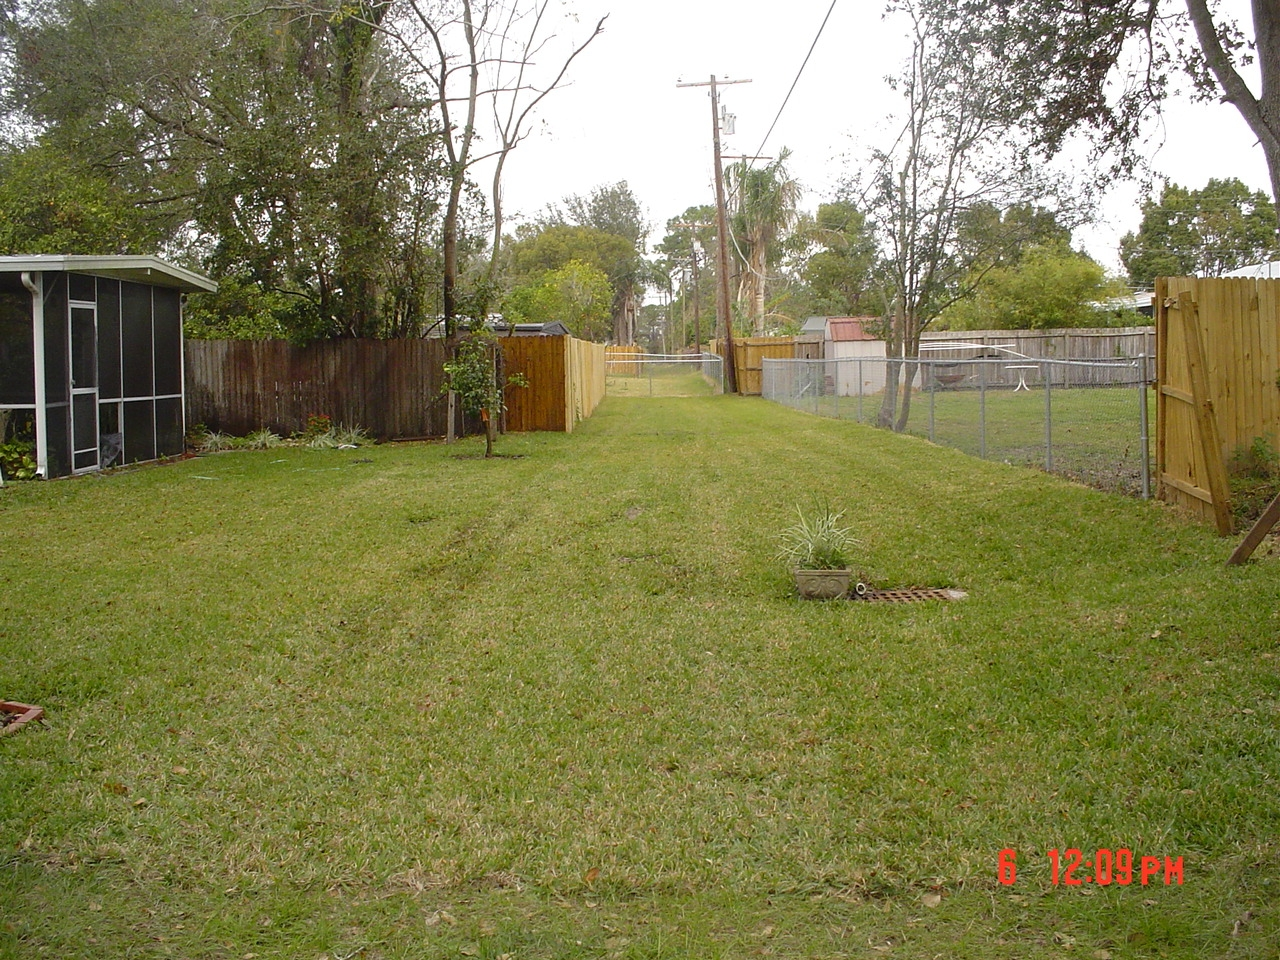 apwa reporter drainage improvements for meadowglen drive and